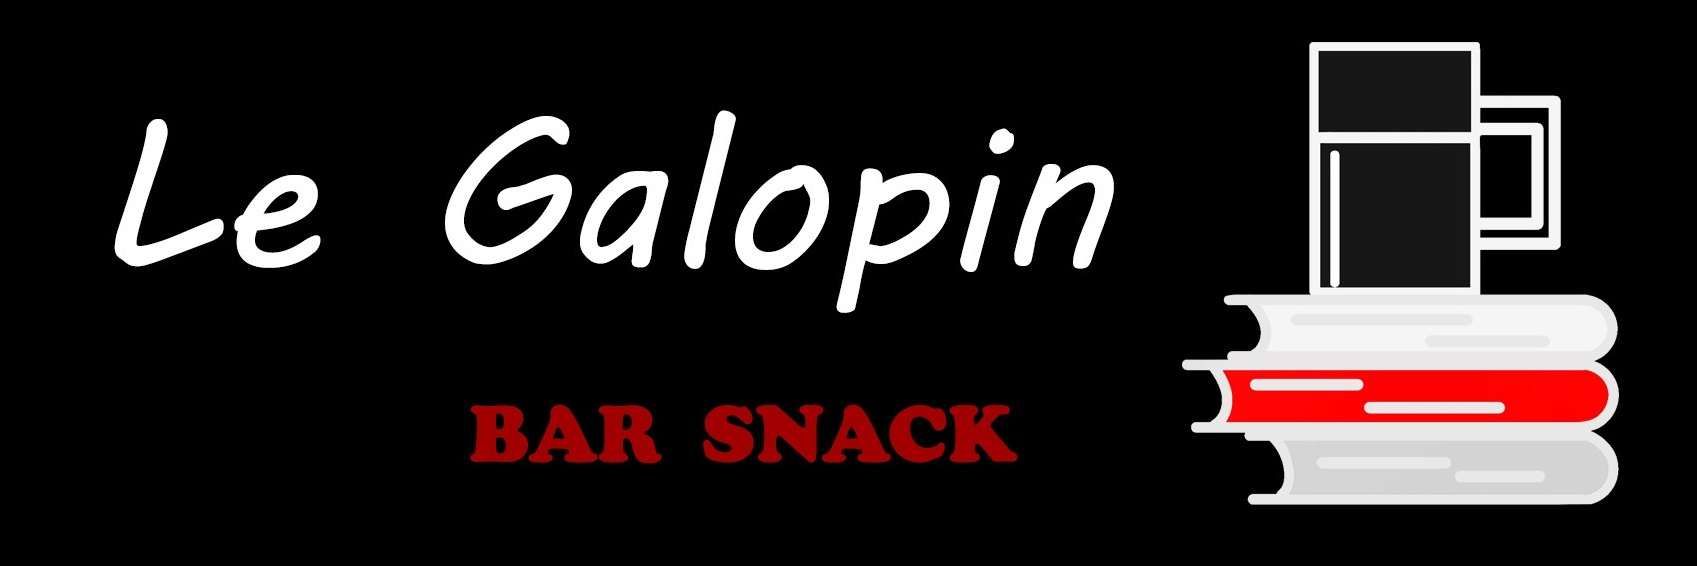 Bar Le Galopin